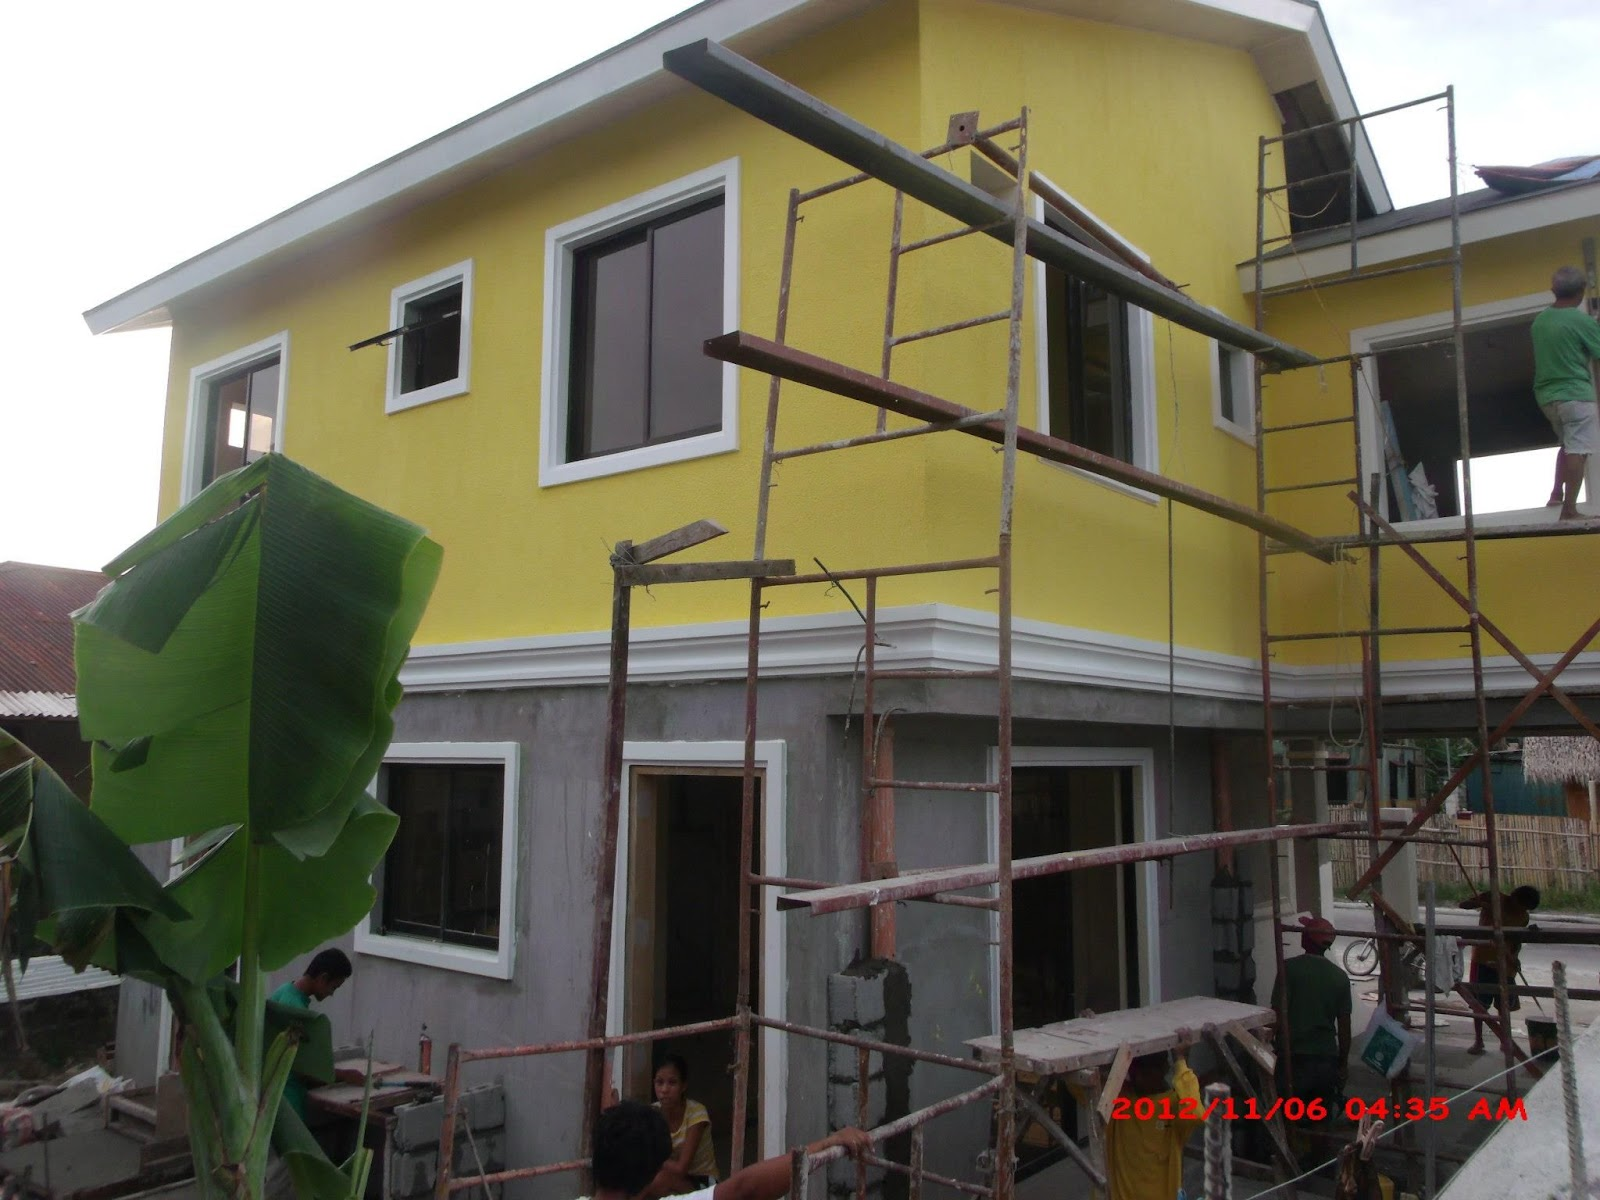 philippines real estate build a new home build new home new house  developments new houses developments build housing new housing development house design house designs philippines house design phillipine house design home design modern house design